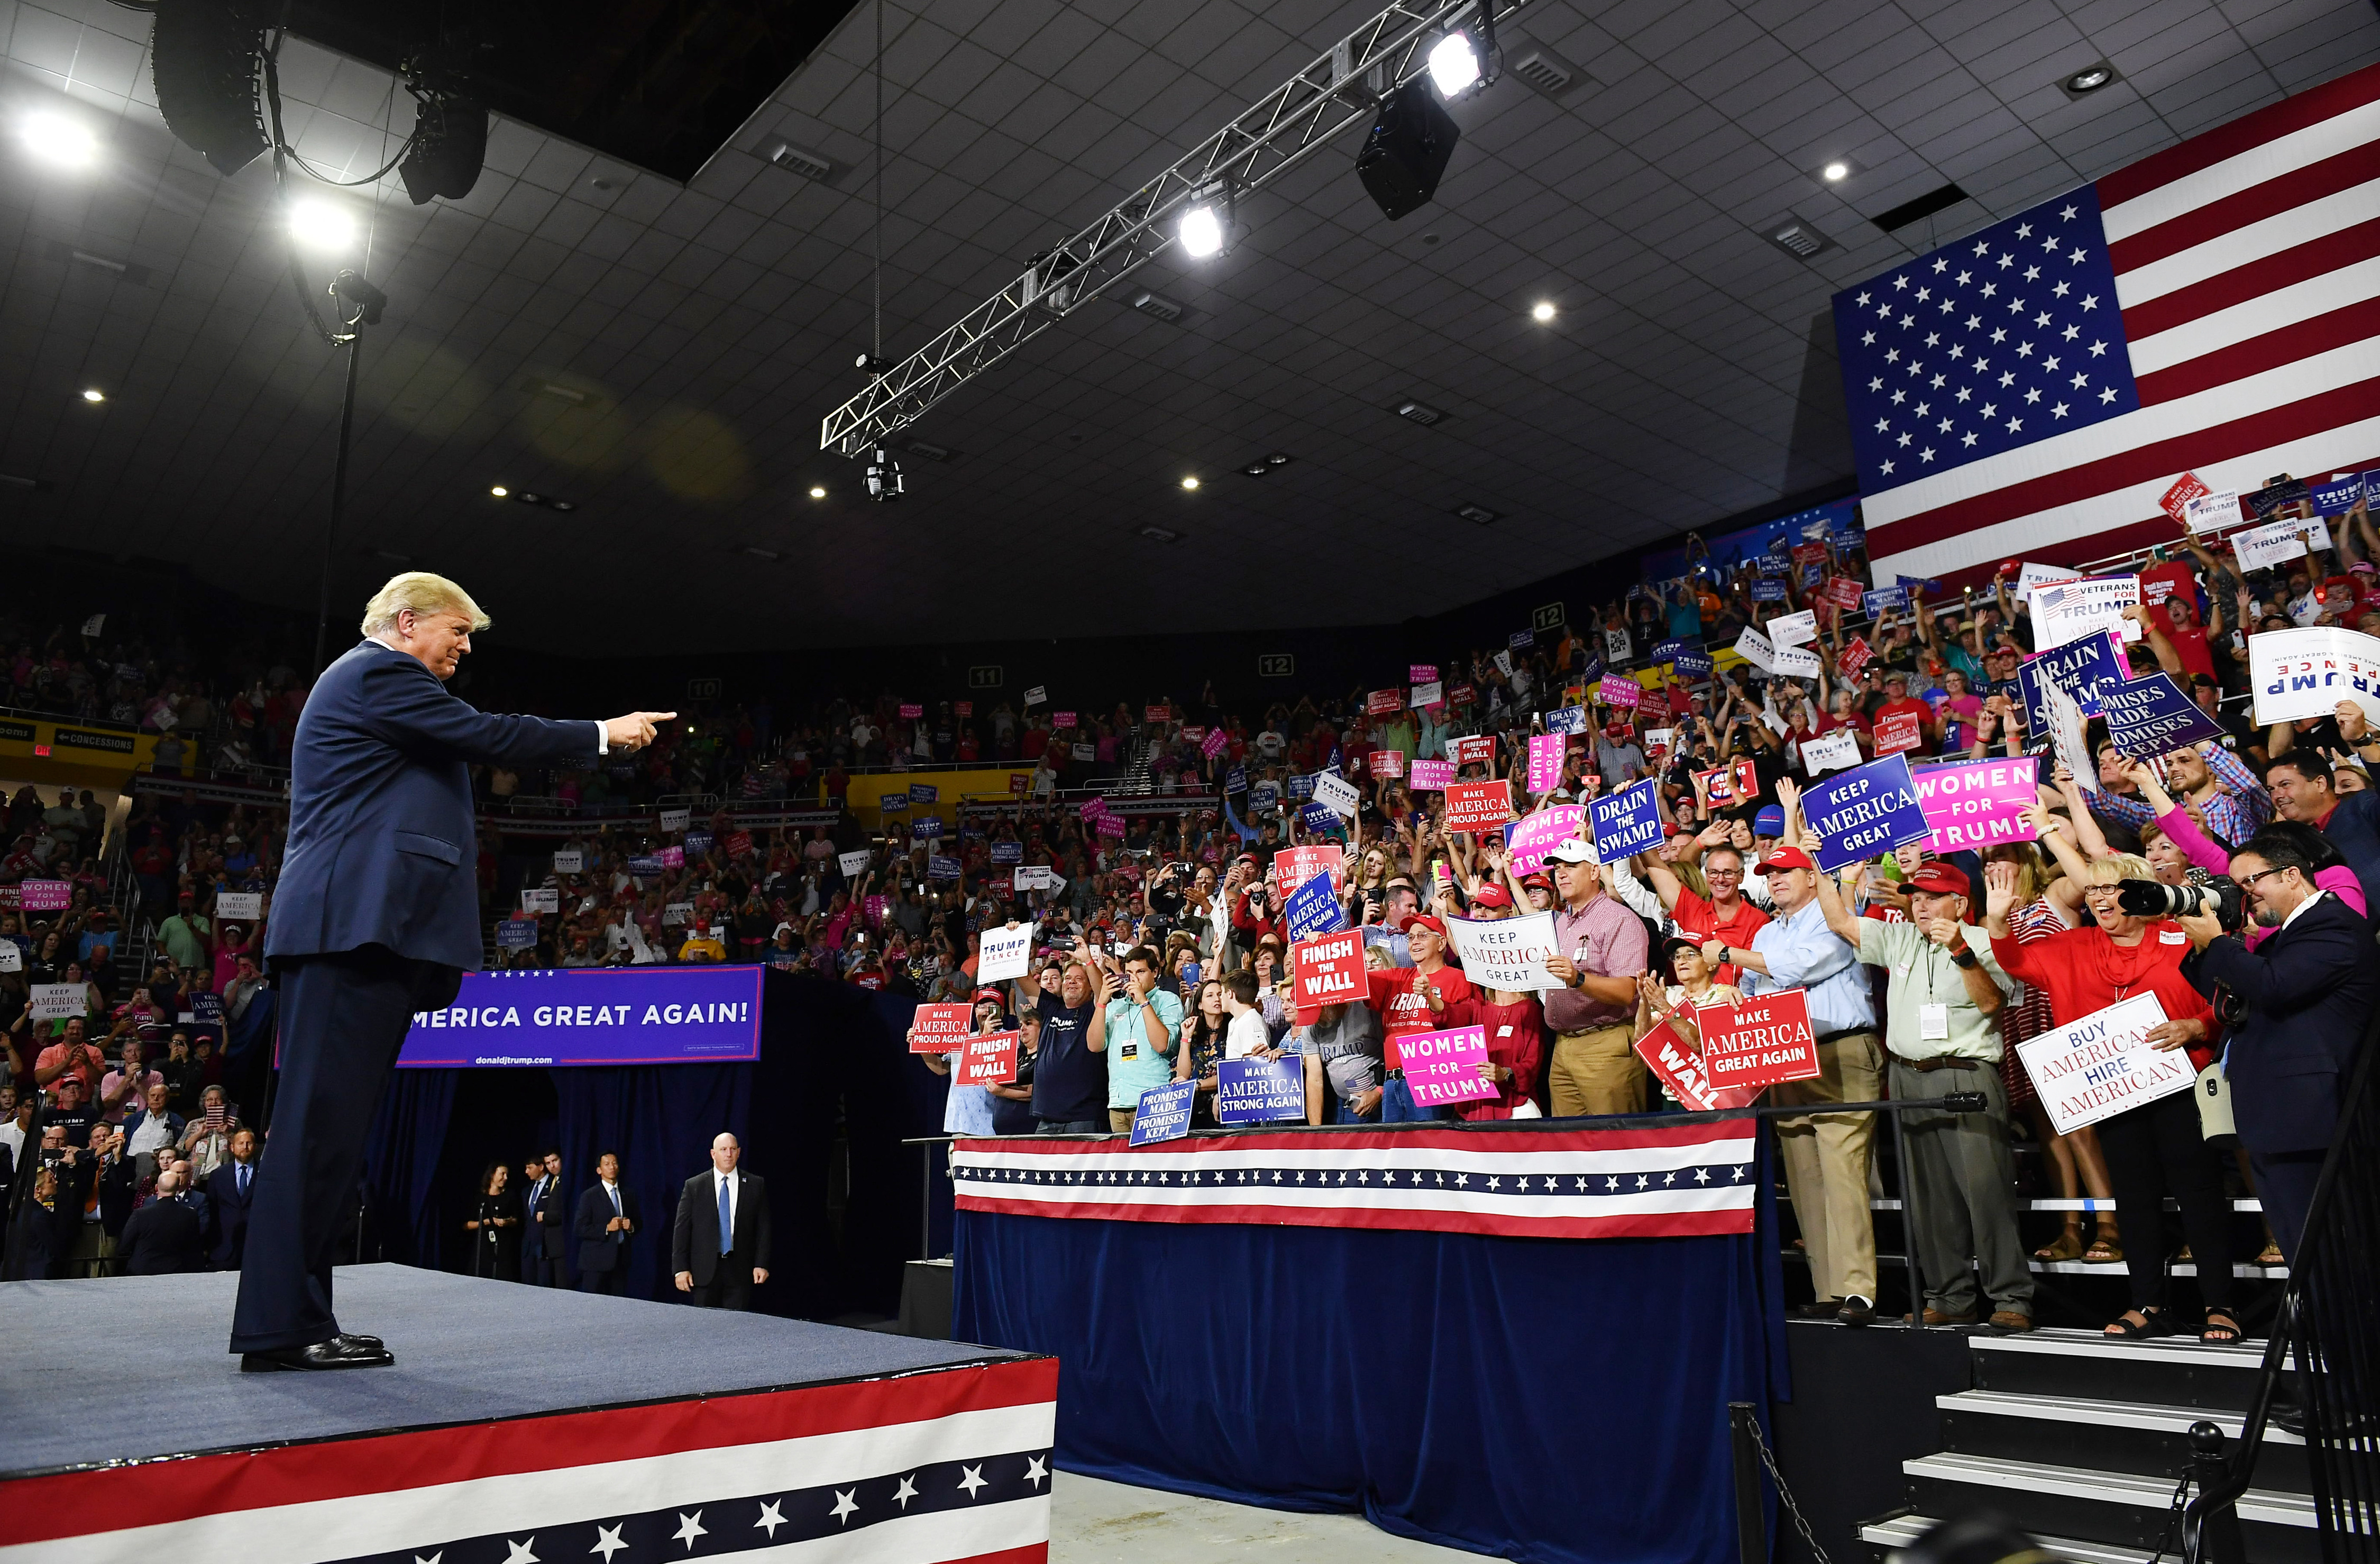 Trump arrives to speak during a rally in Tennessee on Monday